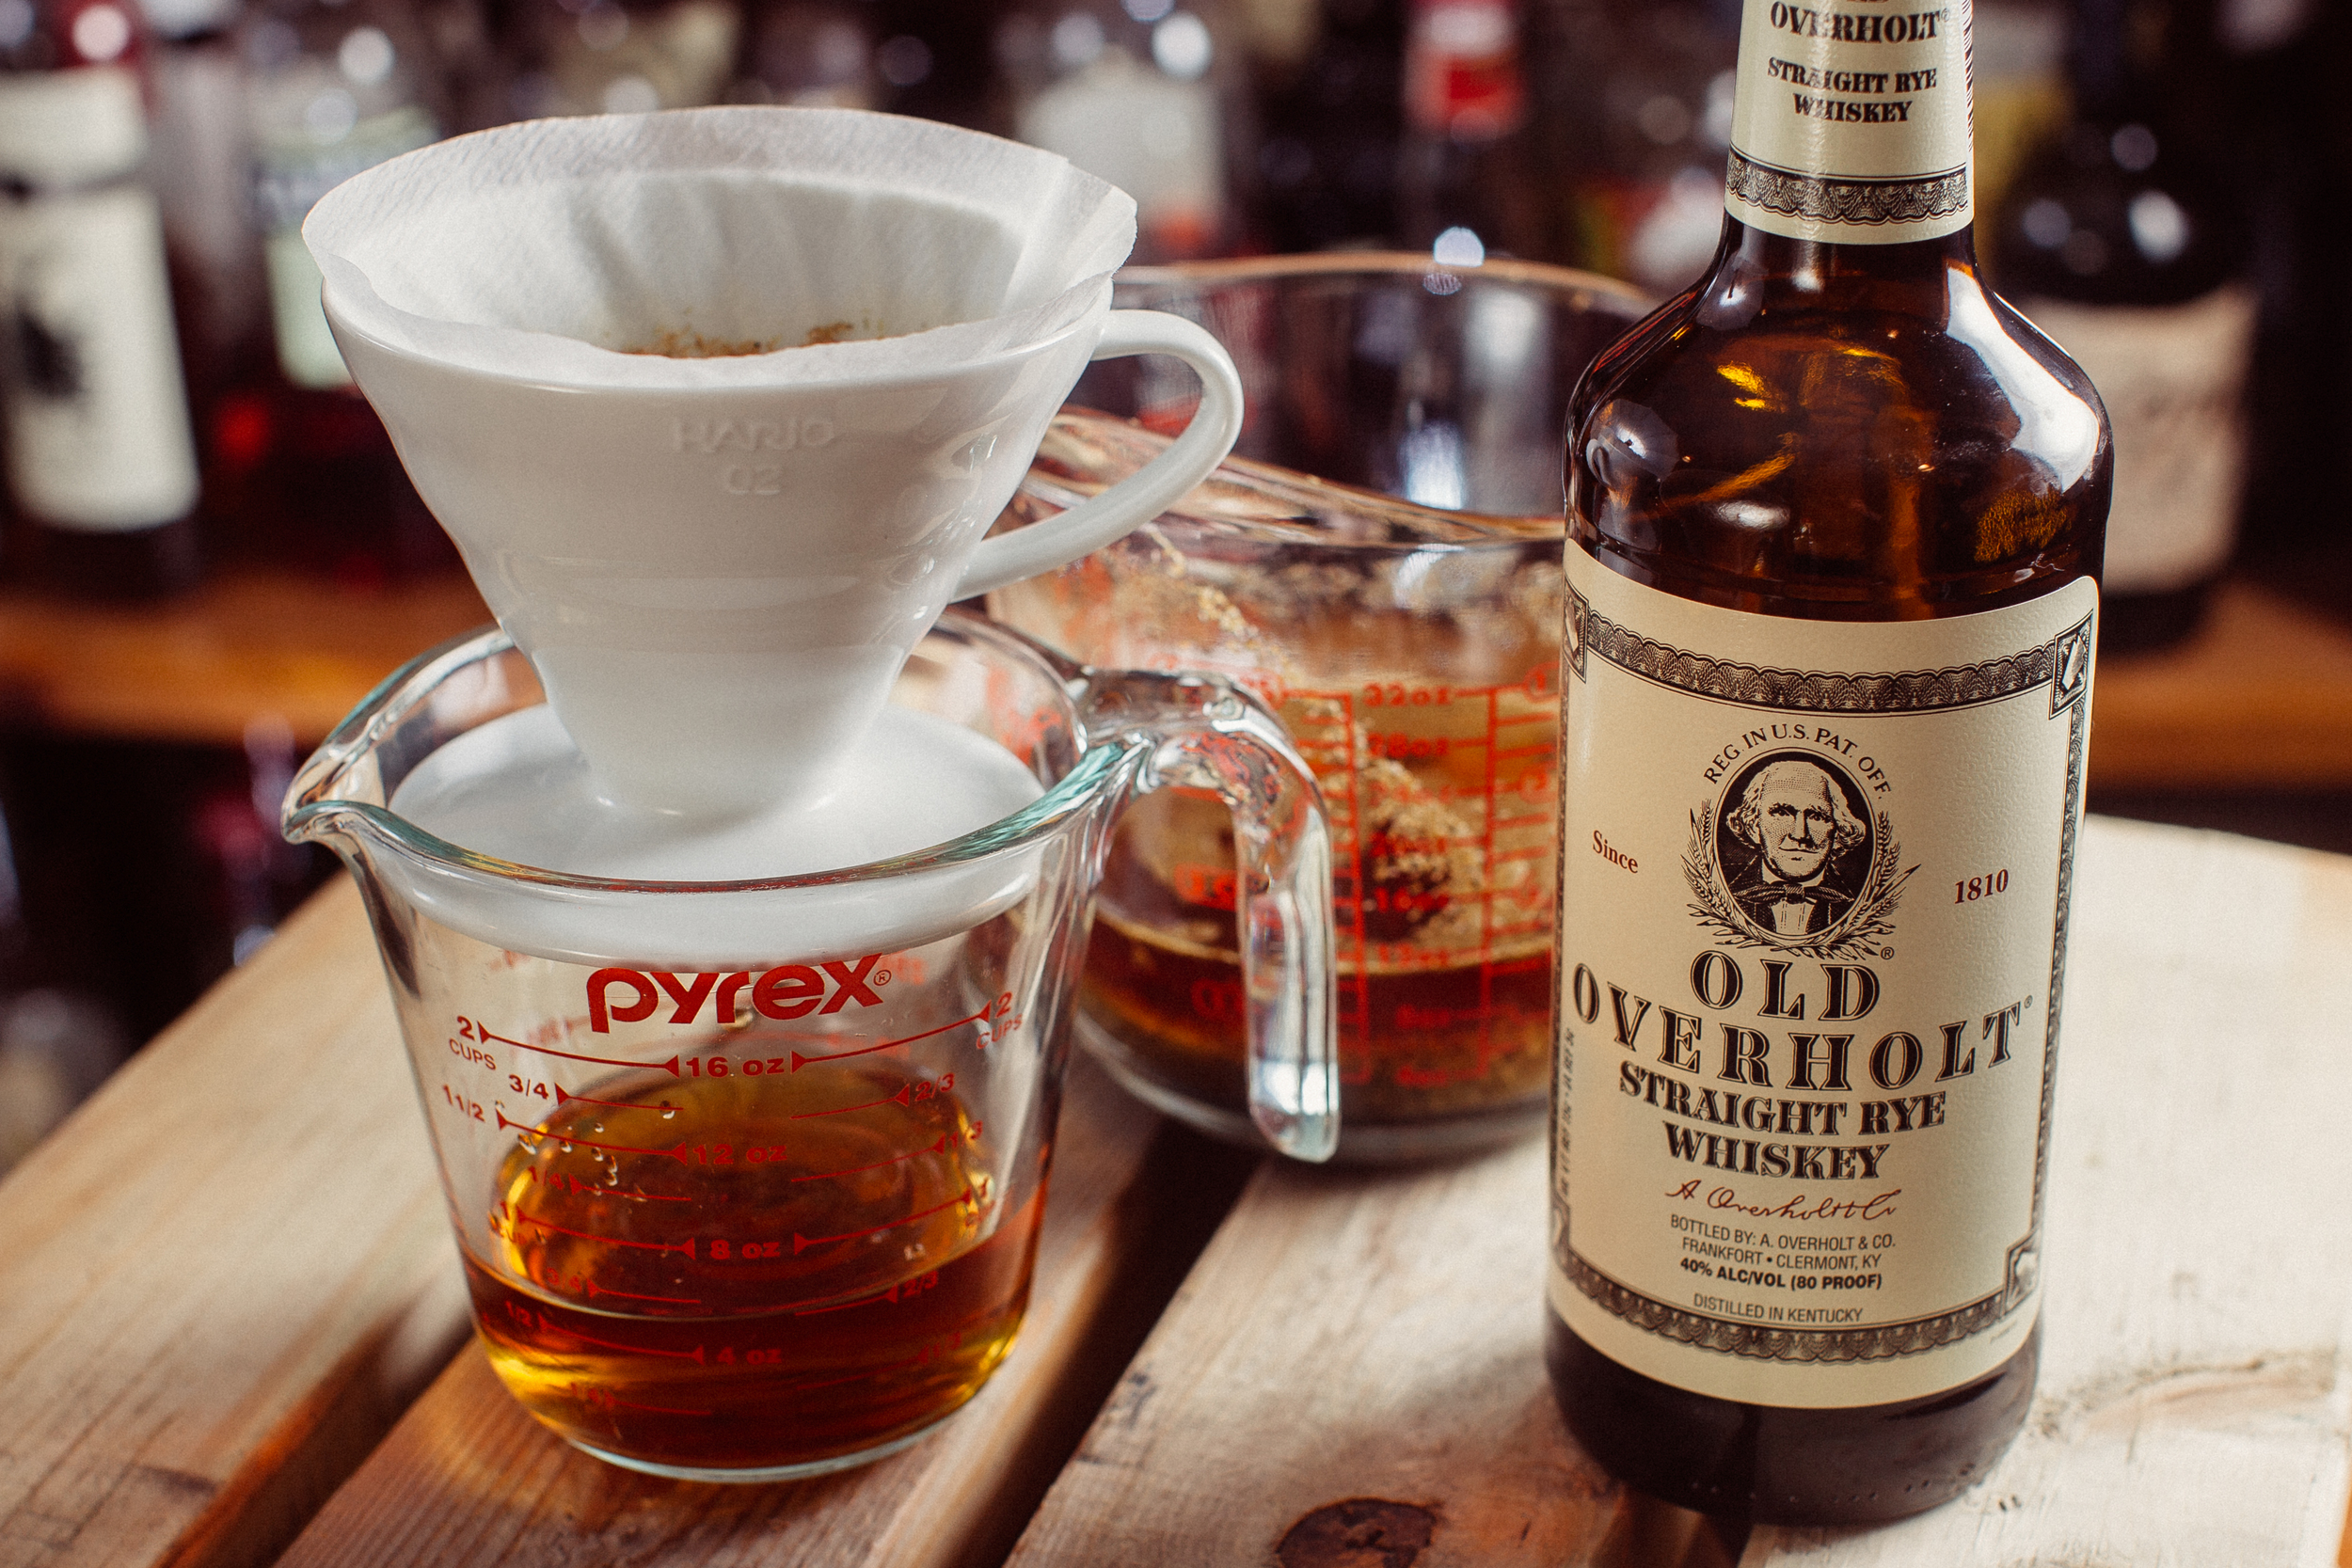 Chamomile infused Old Overholt straight why whiskey